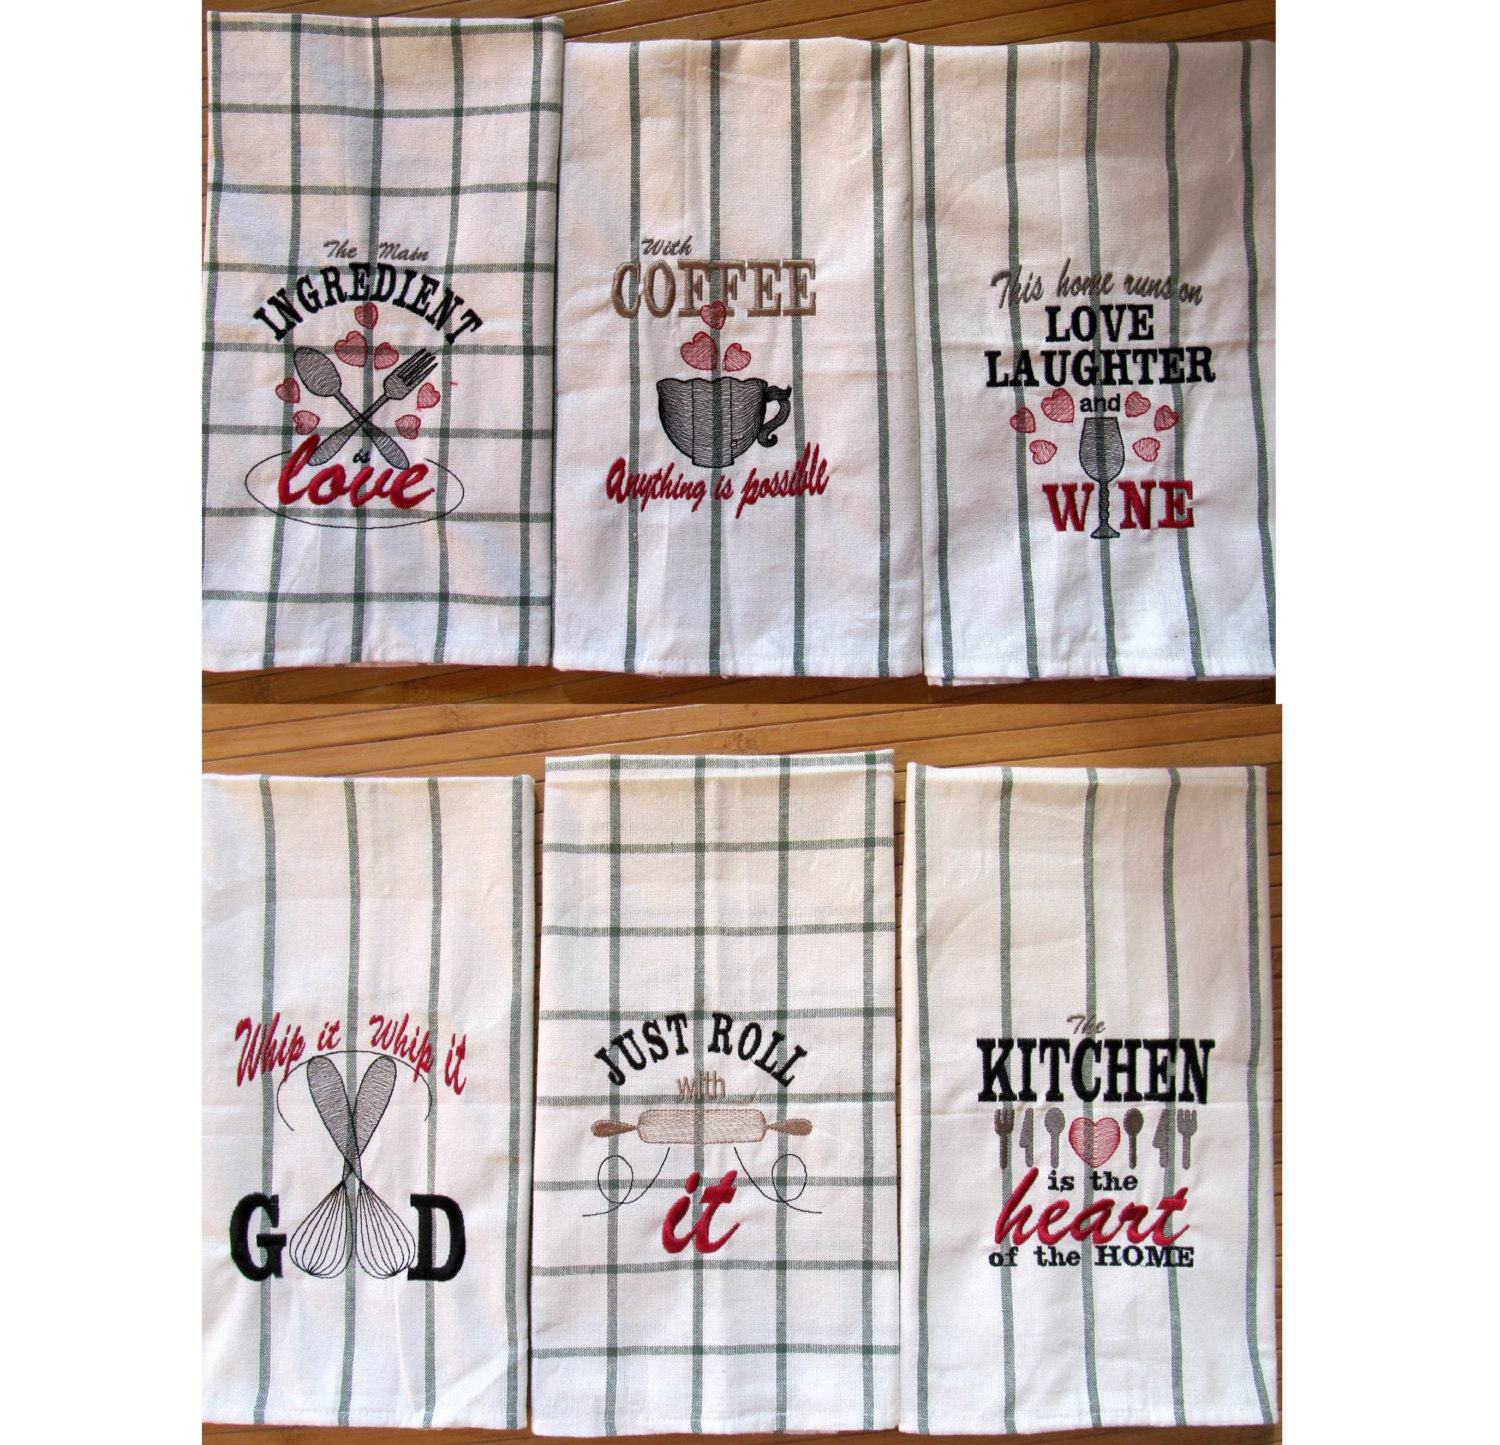 Discount 40% Kitchen quotes Pack price 6 towel embroidery